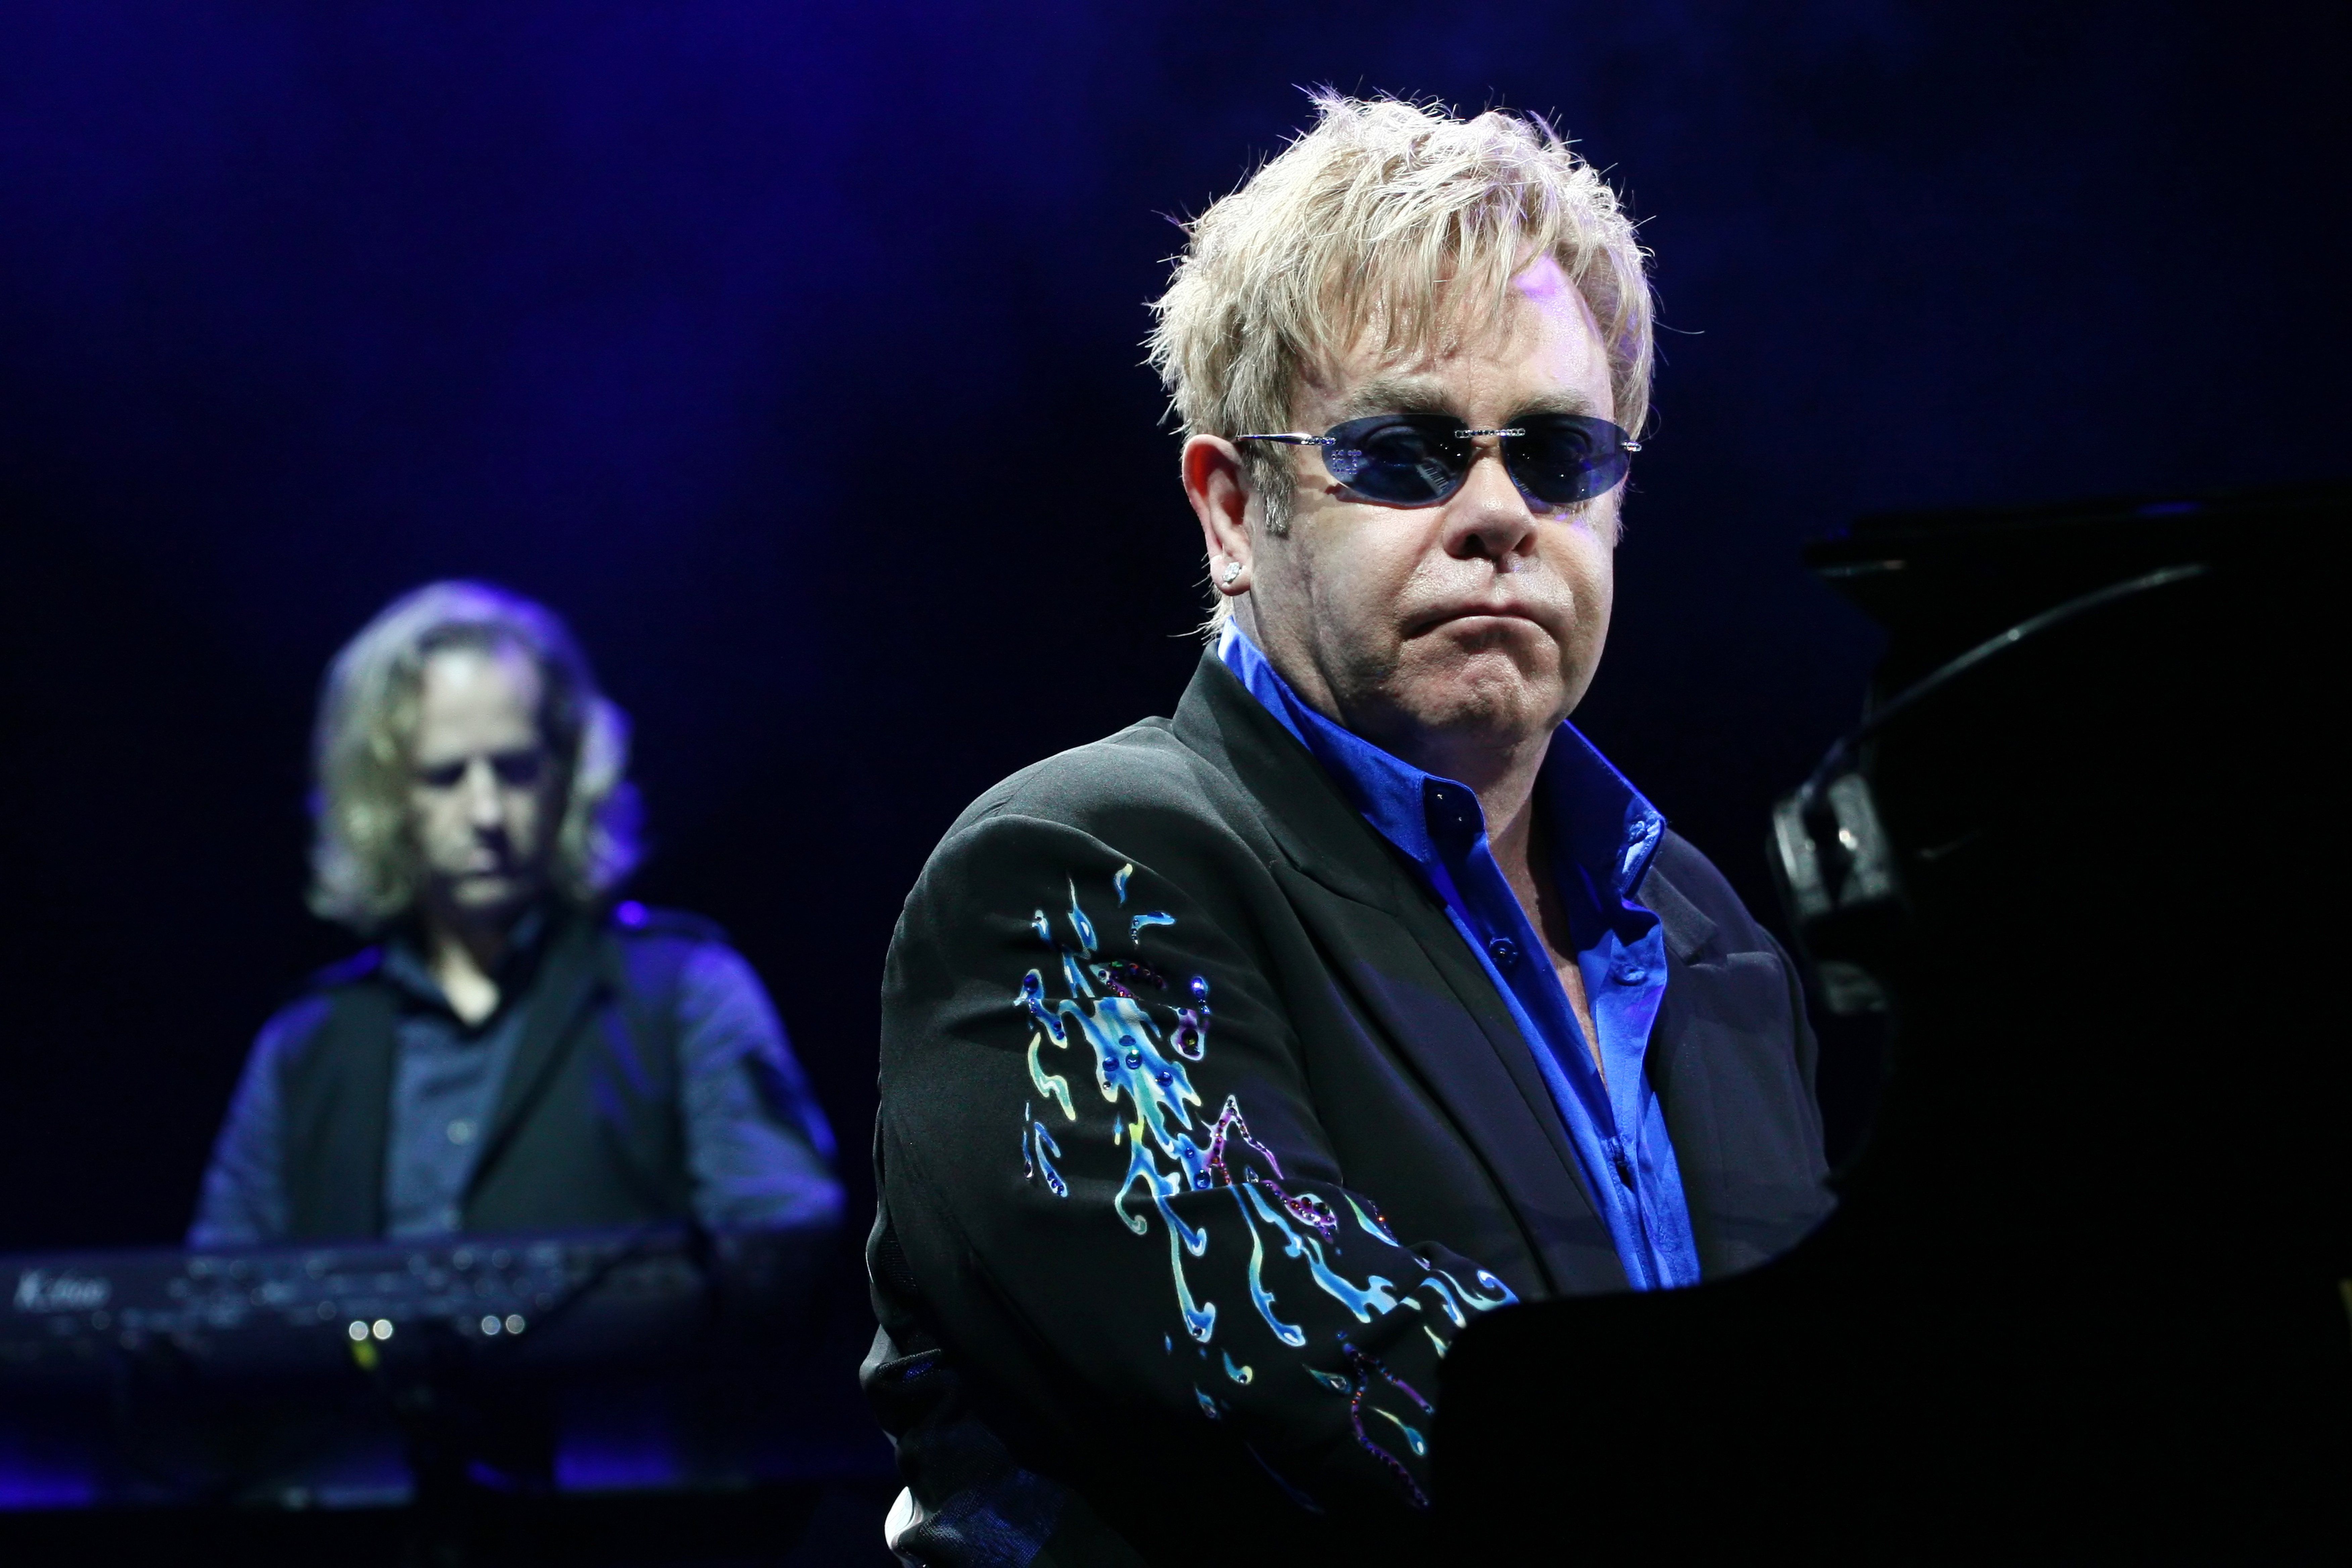 Singer Elton John performs onstage at Minsk Arena June 26, 2010 | Source: Shutterstock